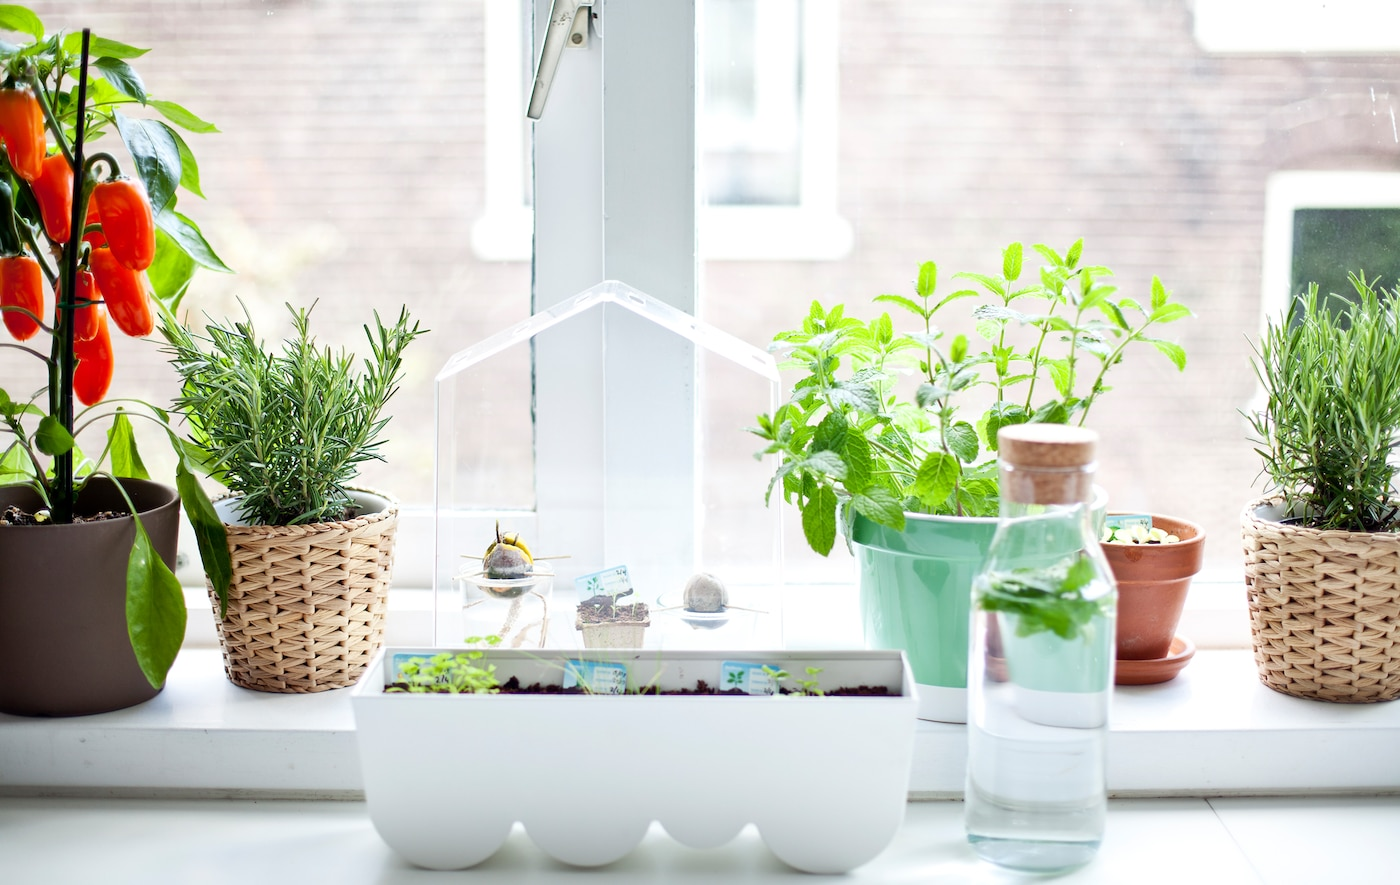 Window sill garden with herbs, plants and mini greenhouse SEO-friendly name: Window sill garden